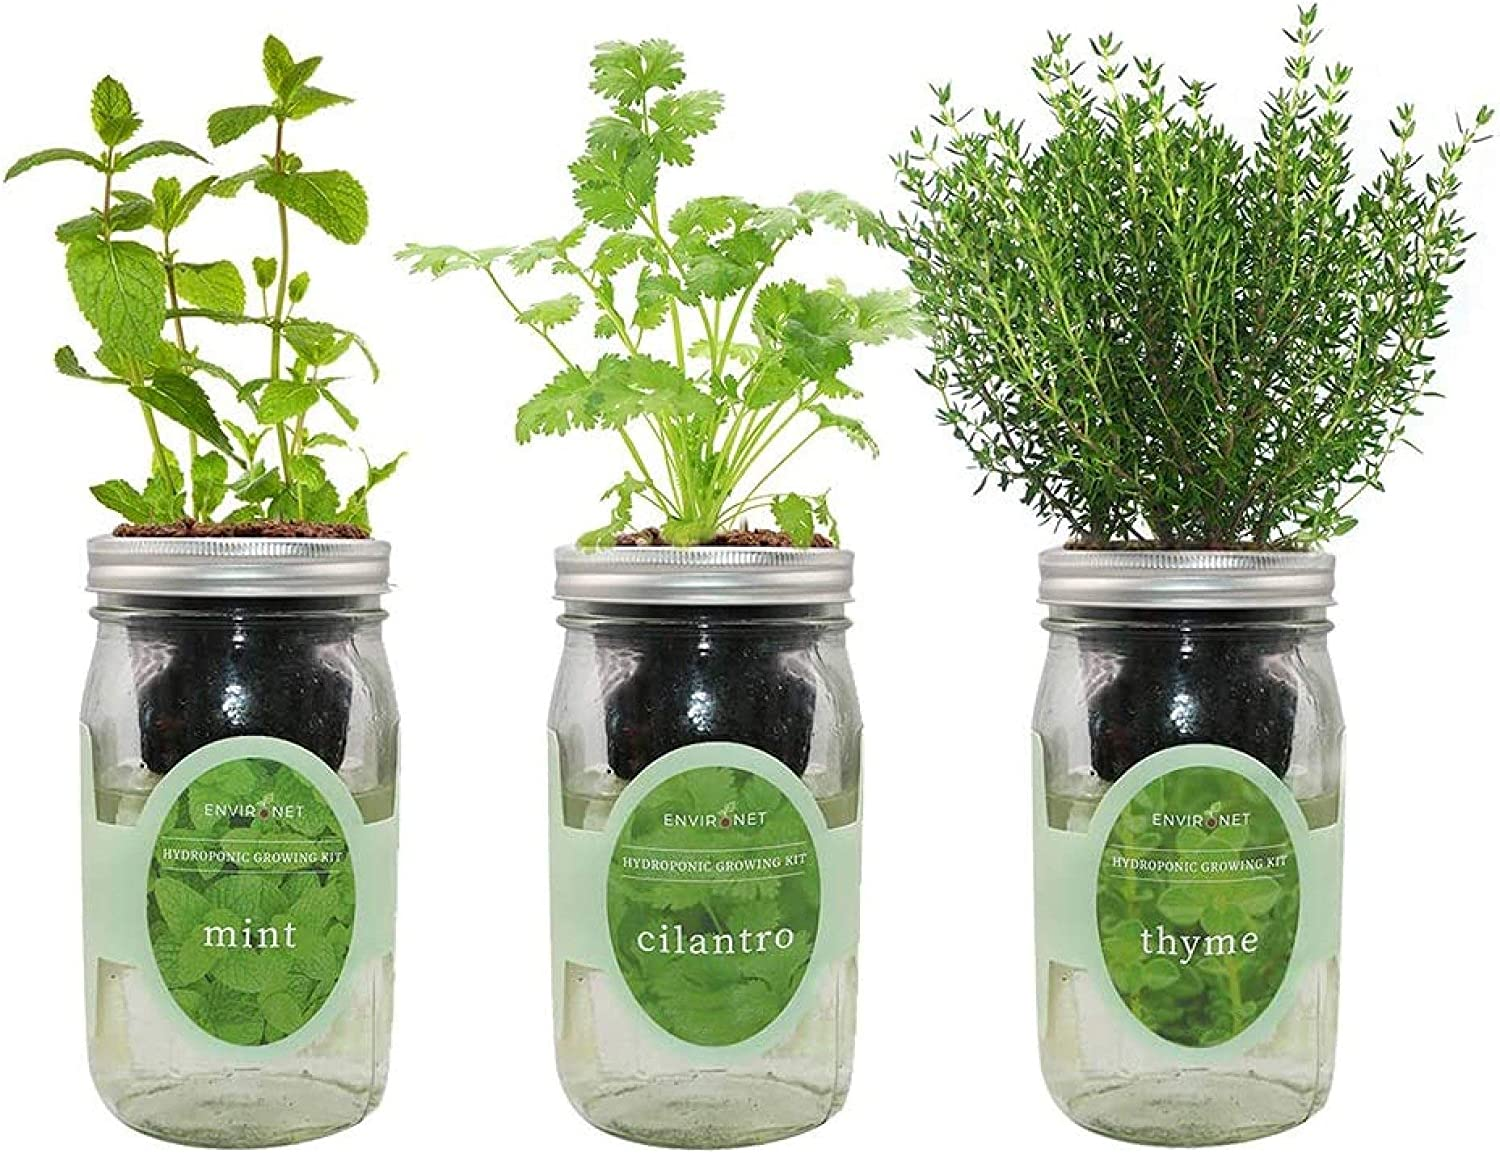 Environet Hydroponic Growing Kit Set, Self-Watering Mason Jar Herb Garden Starter Kit Indoor, Grow Your Own Herbs from Seeds (Mint, Cilantro and Thyme)